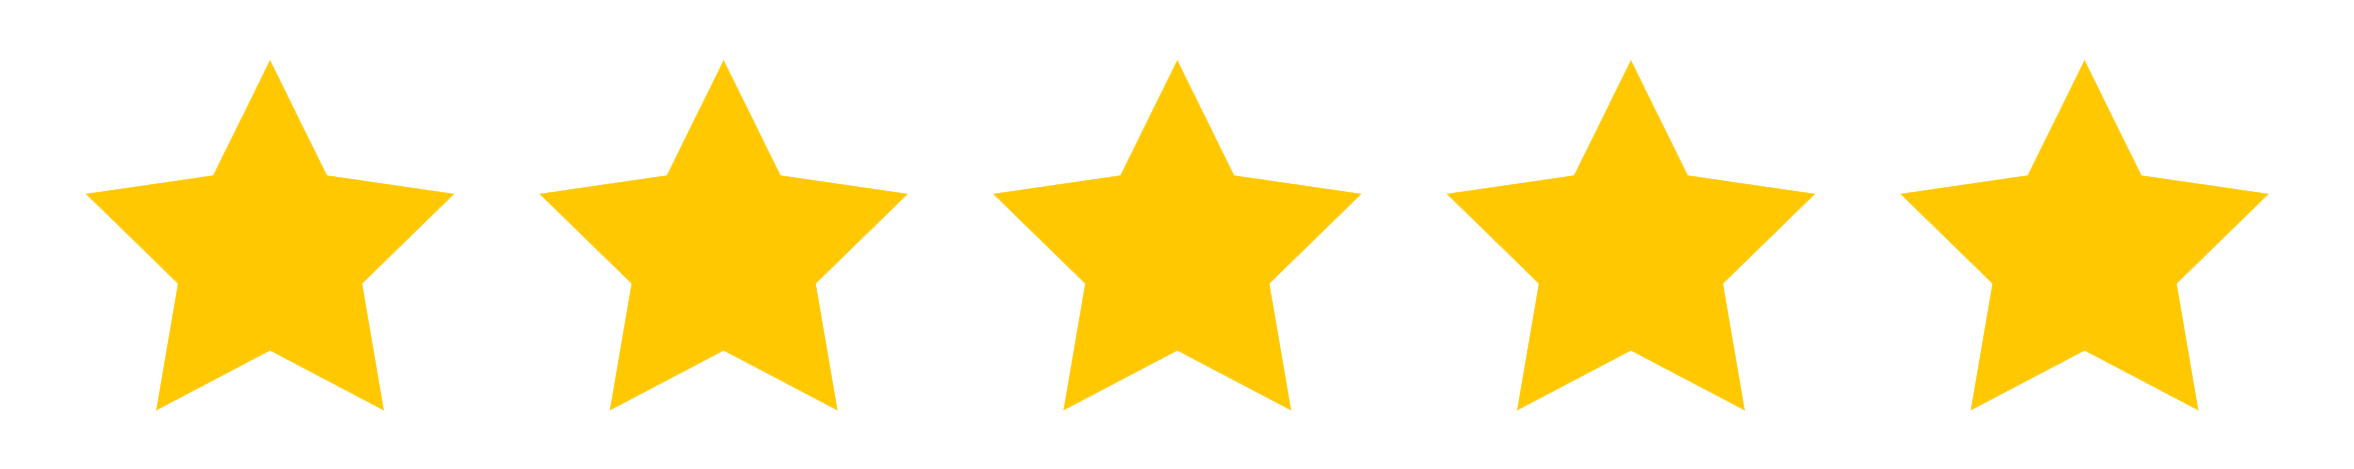 Reviews star rating from Diane C. for A-1 Self Storage in Paramount, California